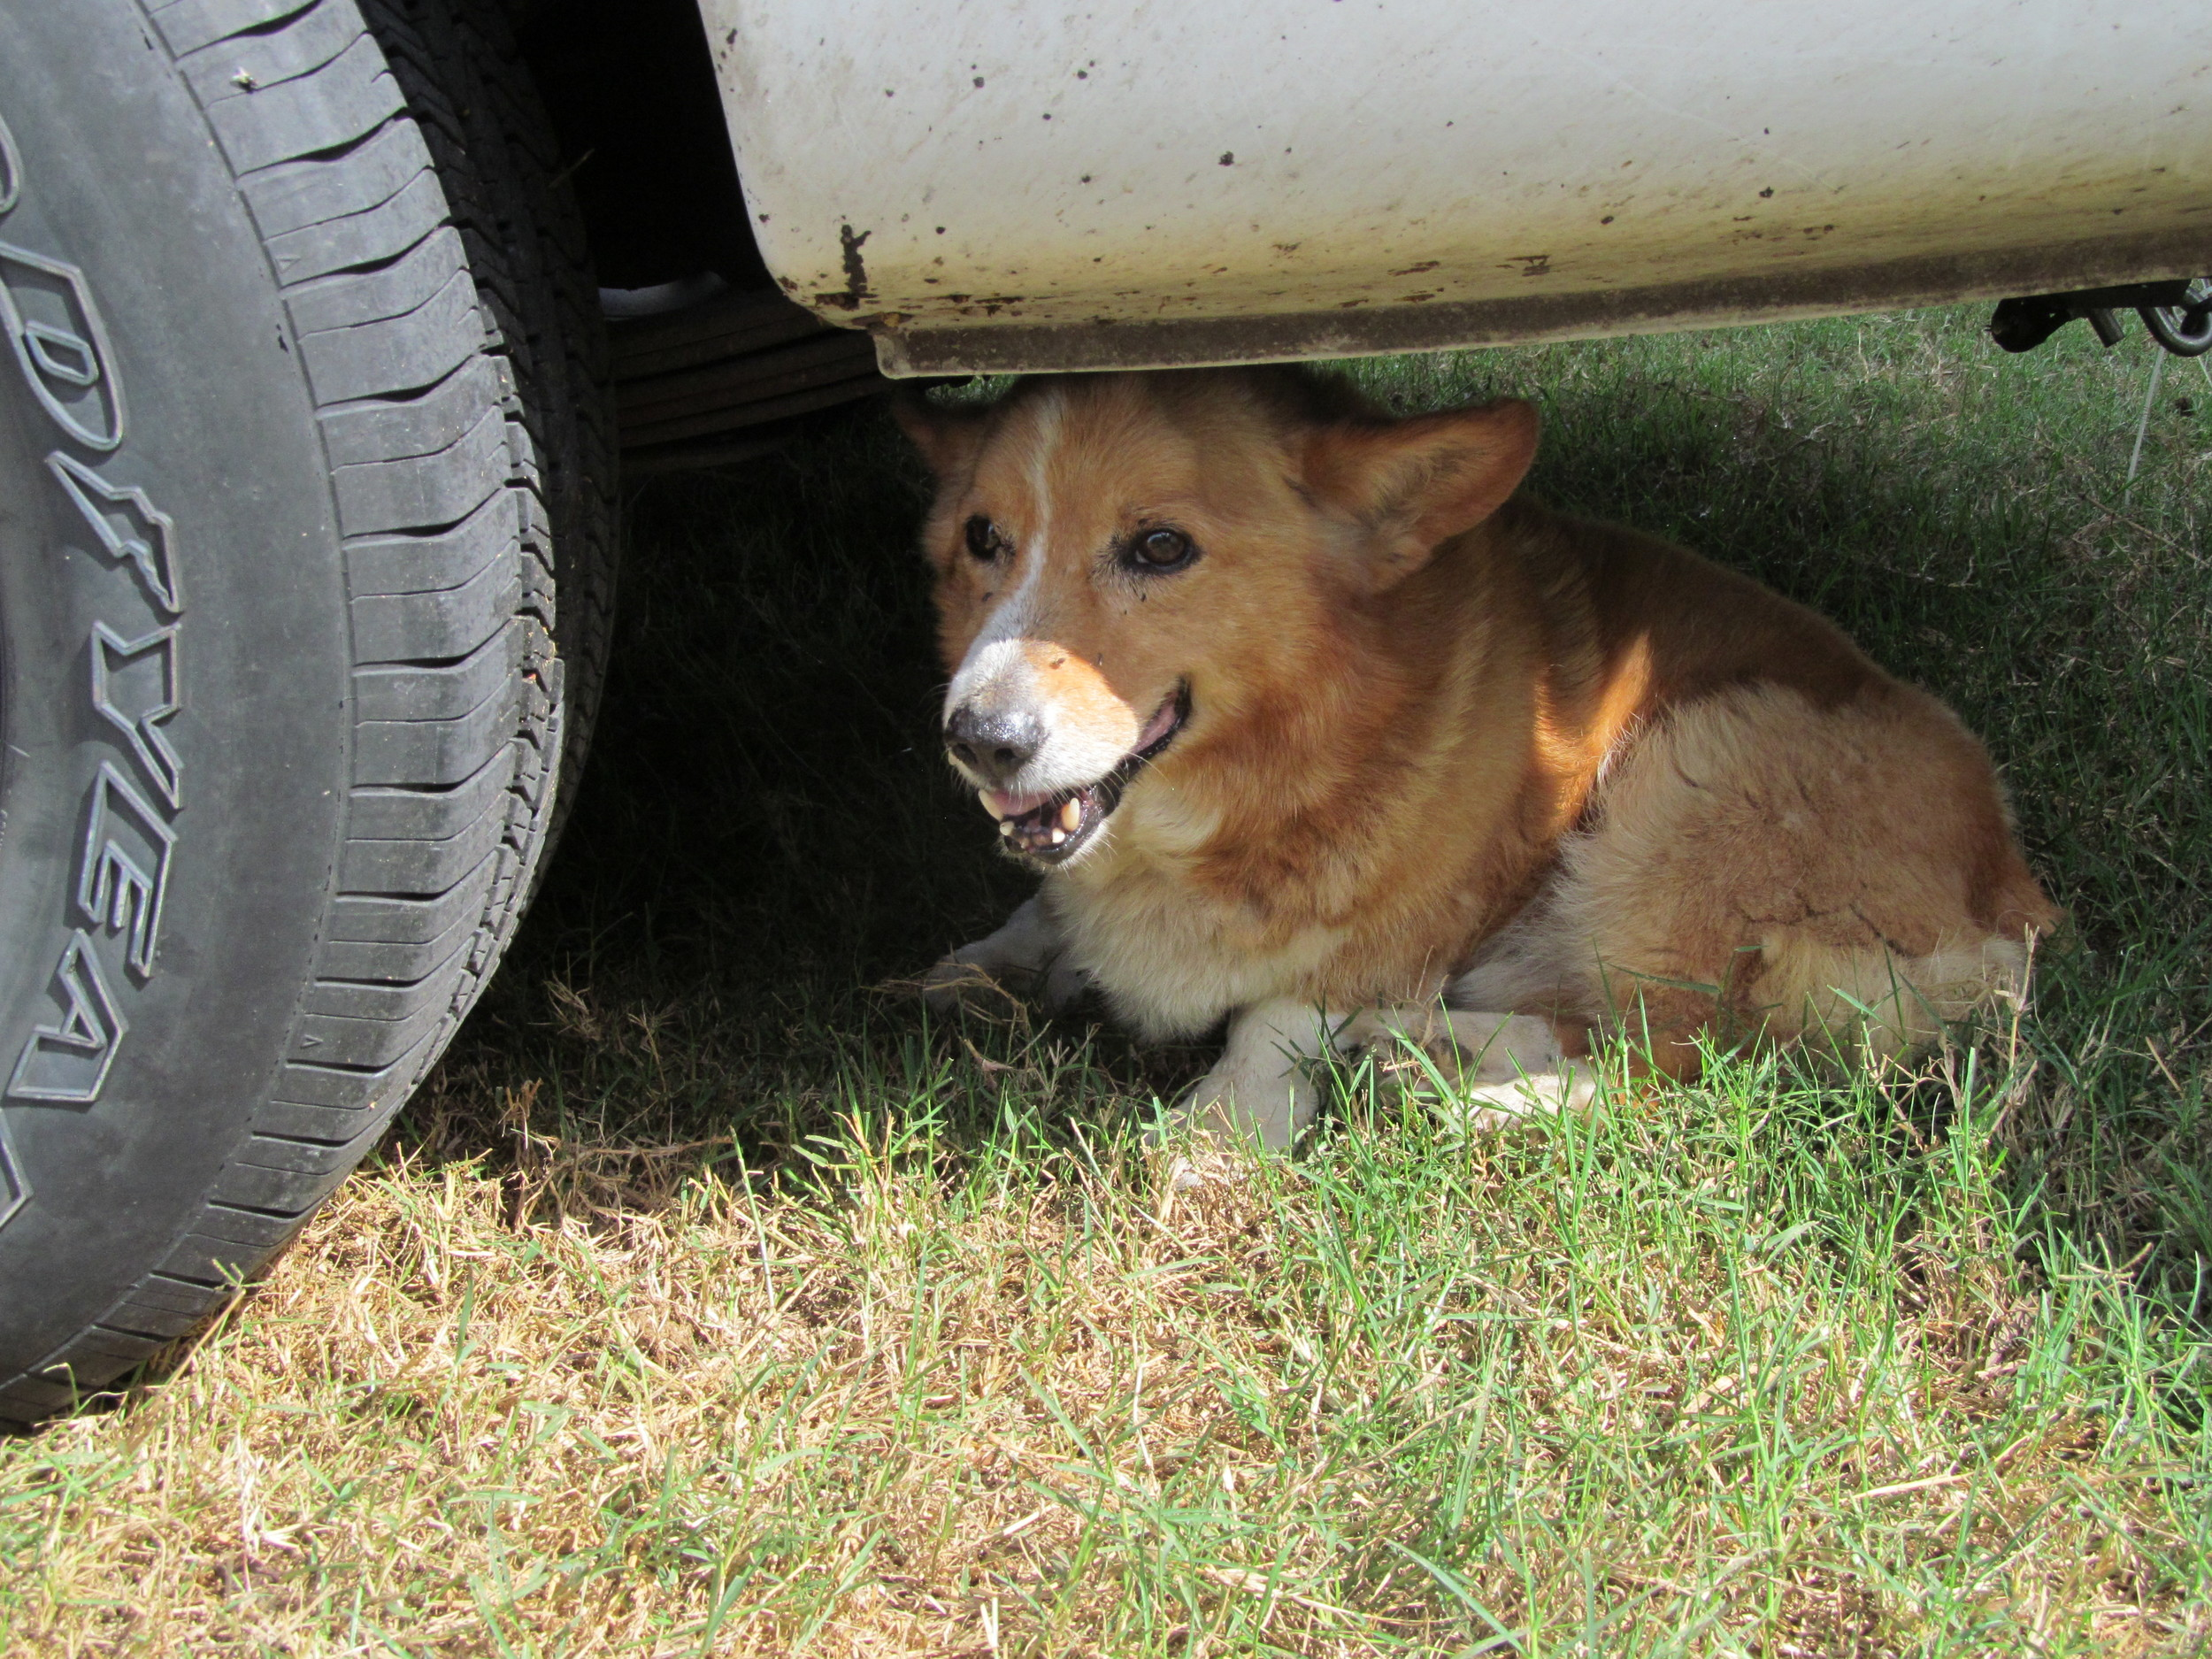 The neighbor's sweet Corgi who immediately claimed a spot under our truck amid all the poo shoveling.